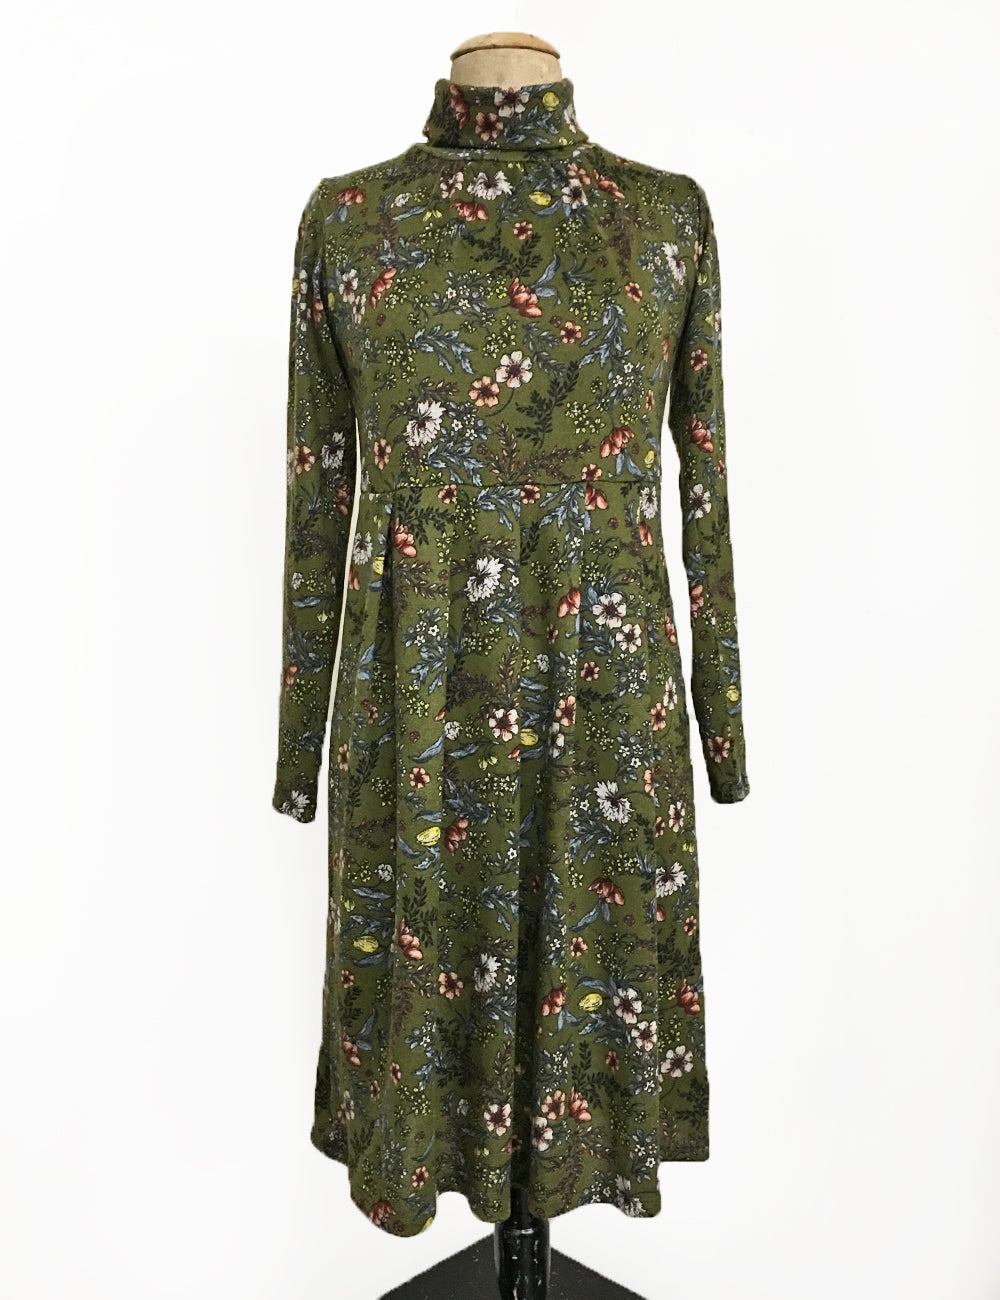 Cozy Green Floral Turtleneck Stretch Knit Mod Pullover Dress